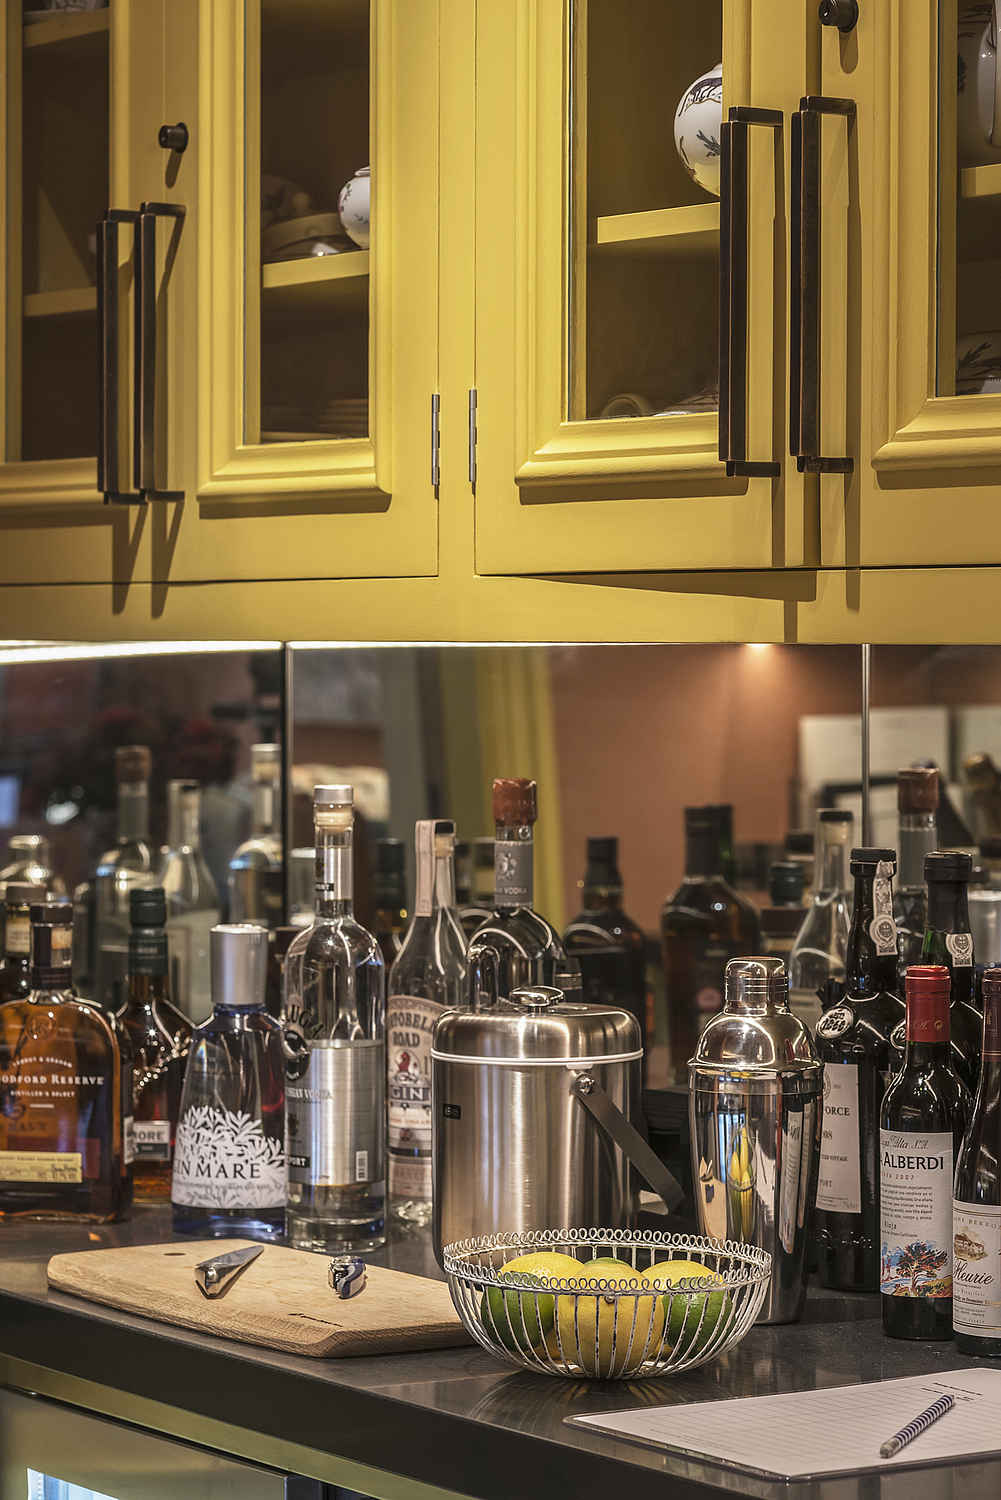 Hotel bar counter detail, London